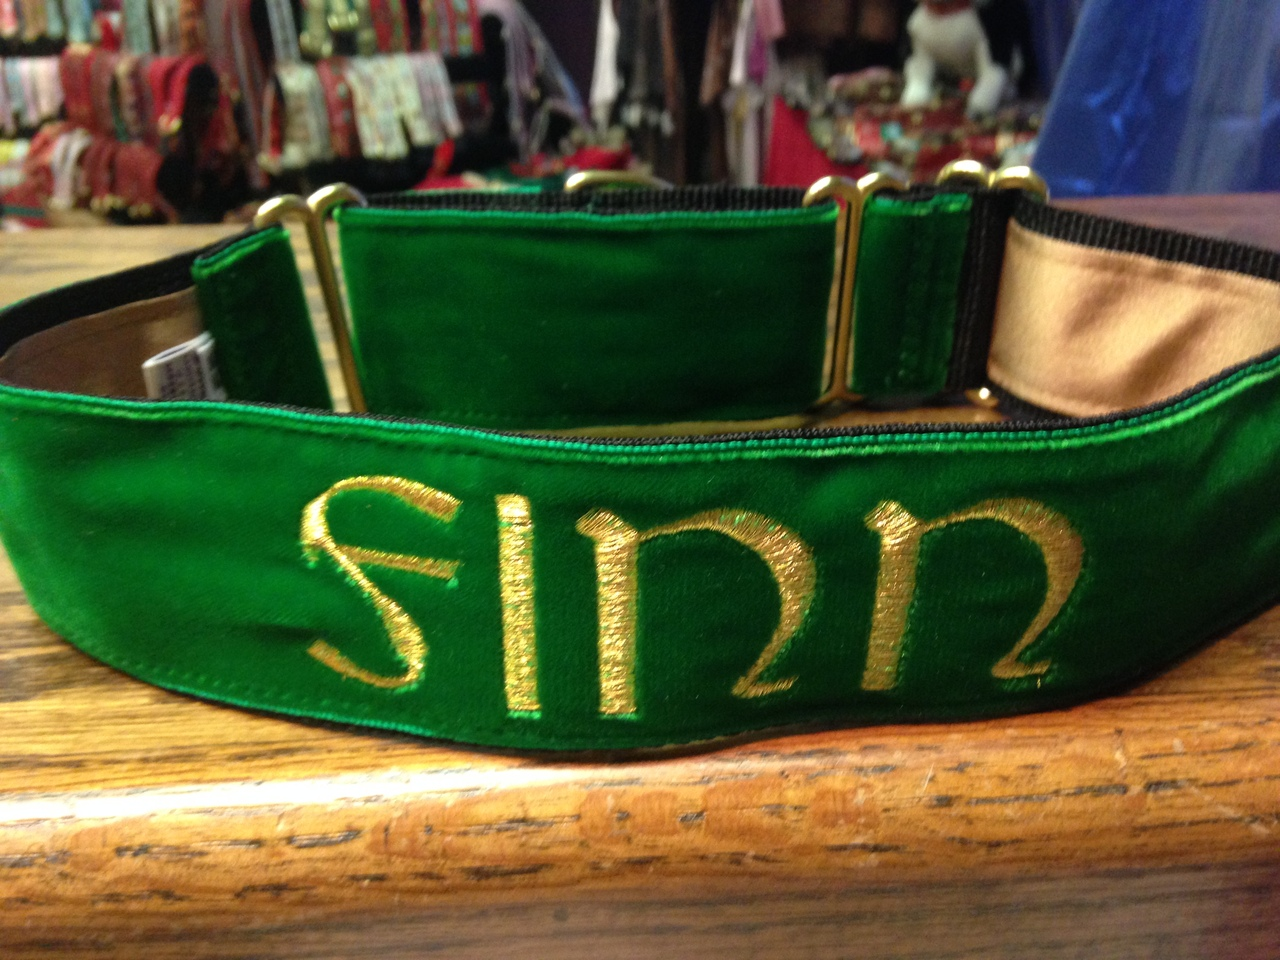 Kelly Green Velvet 3/4 inch Collar